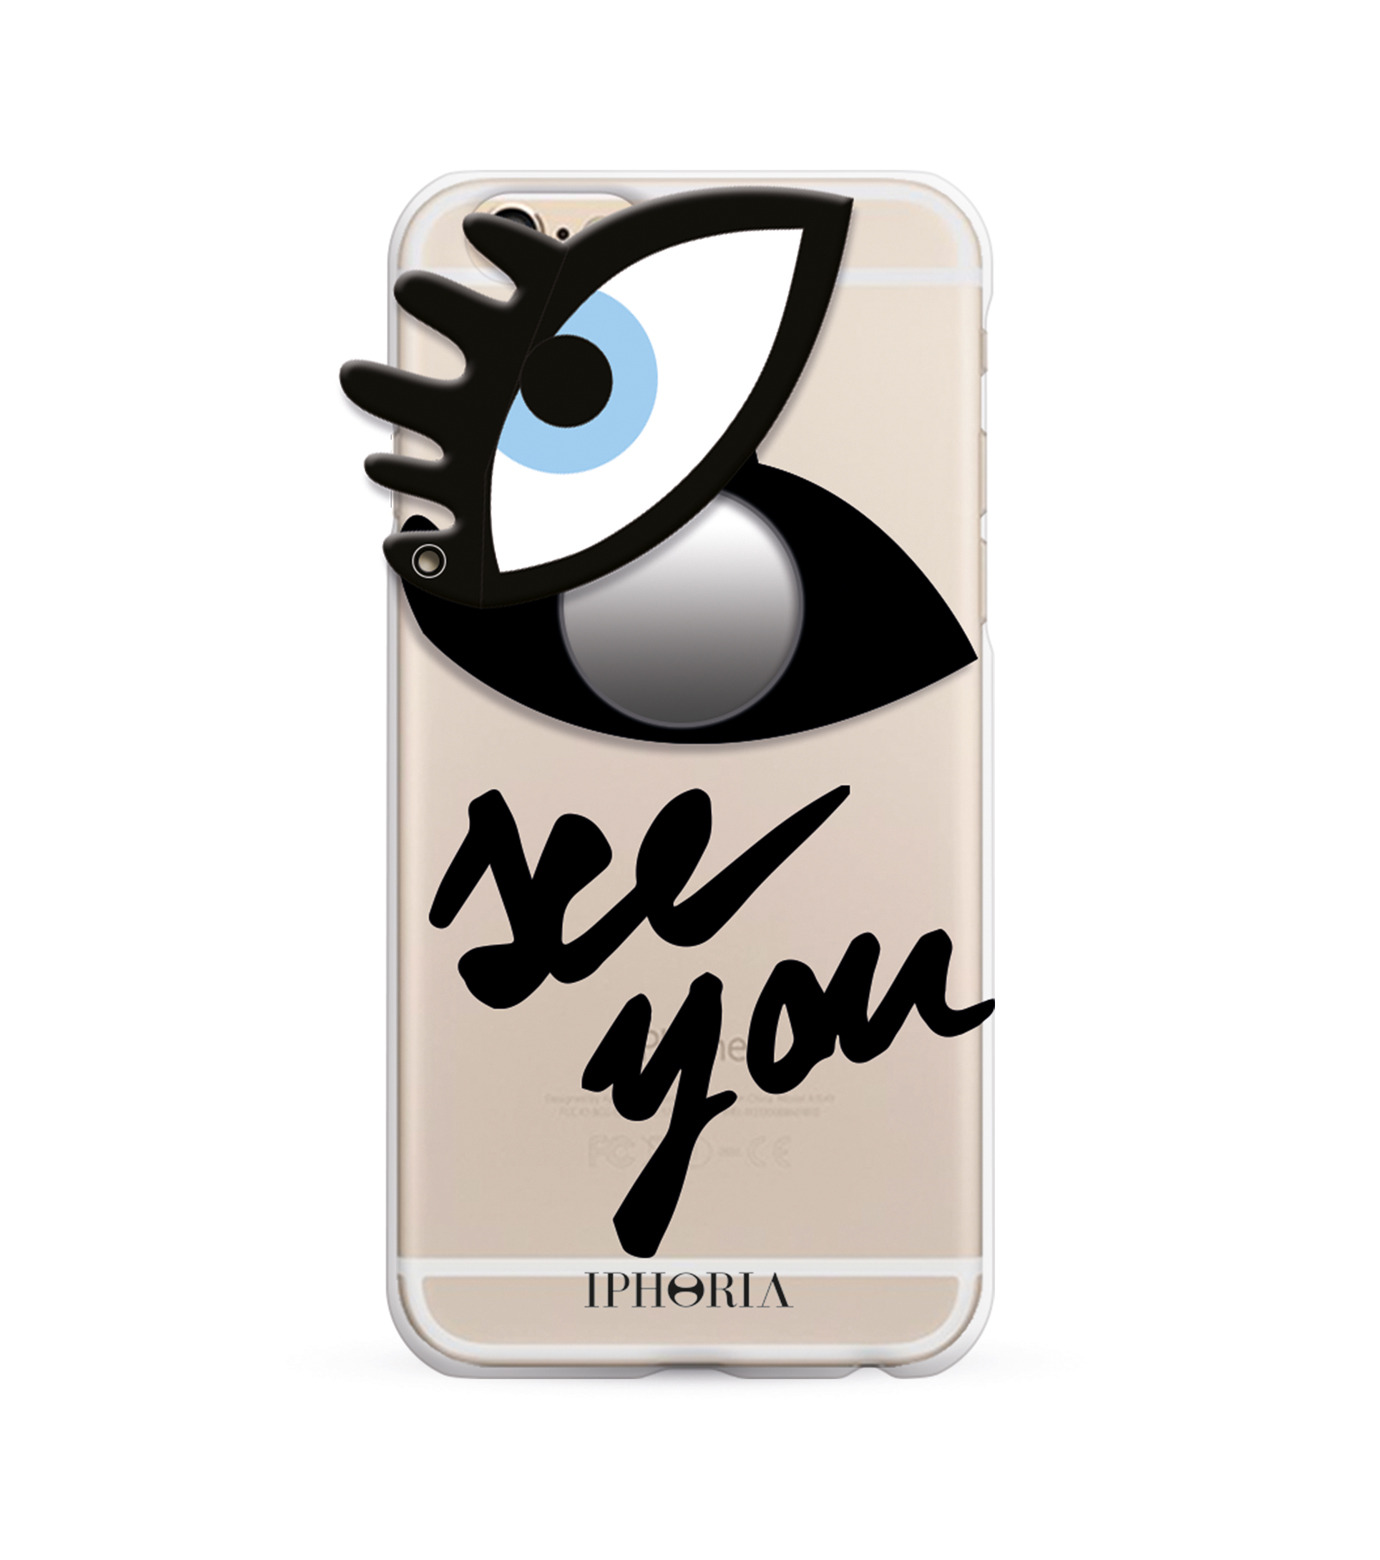 IPHORIA(アイフォリア)のSEE YOU for iPhone 7-NONE(ケースiphone7/7plus/case iphone7/7plus)-14014-0 拡大詳細画像1